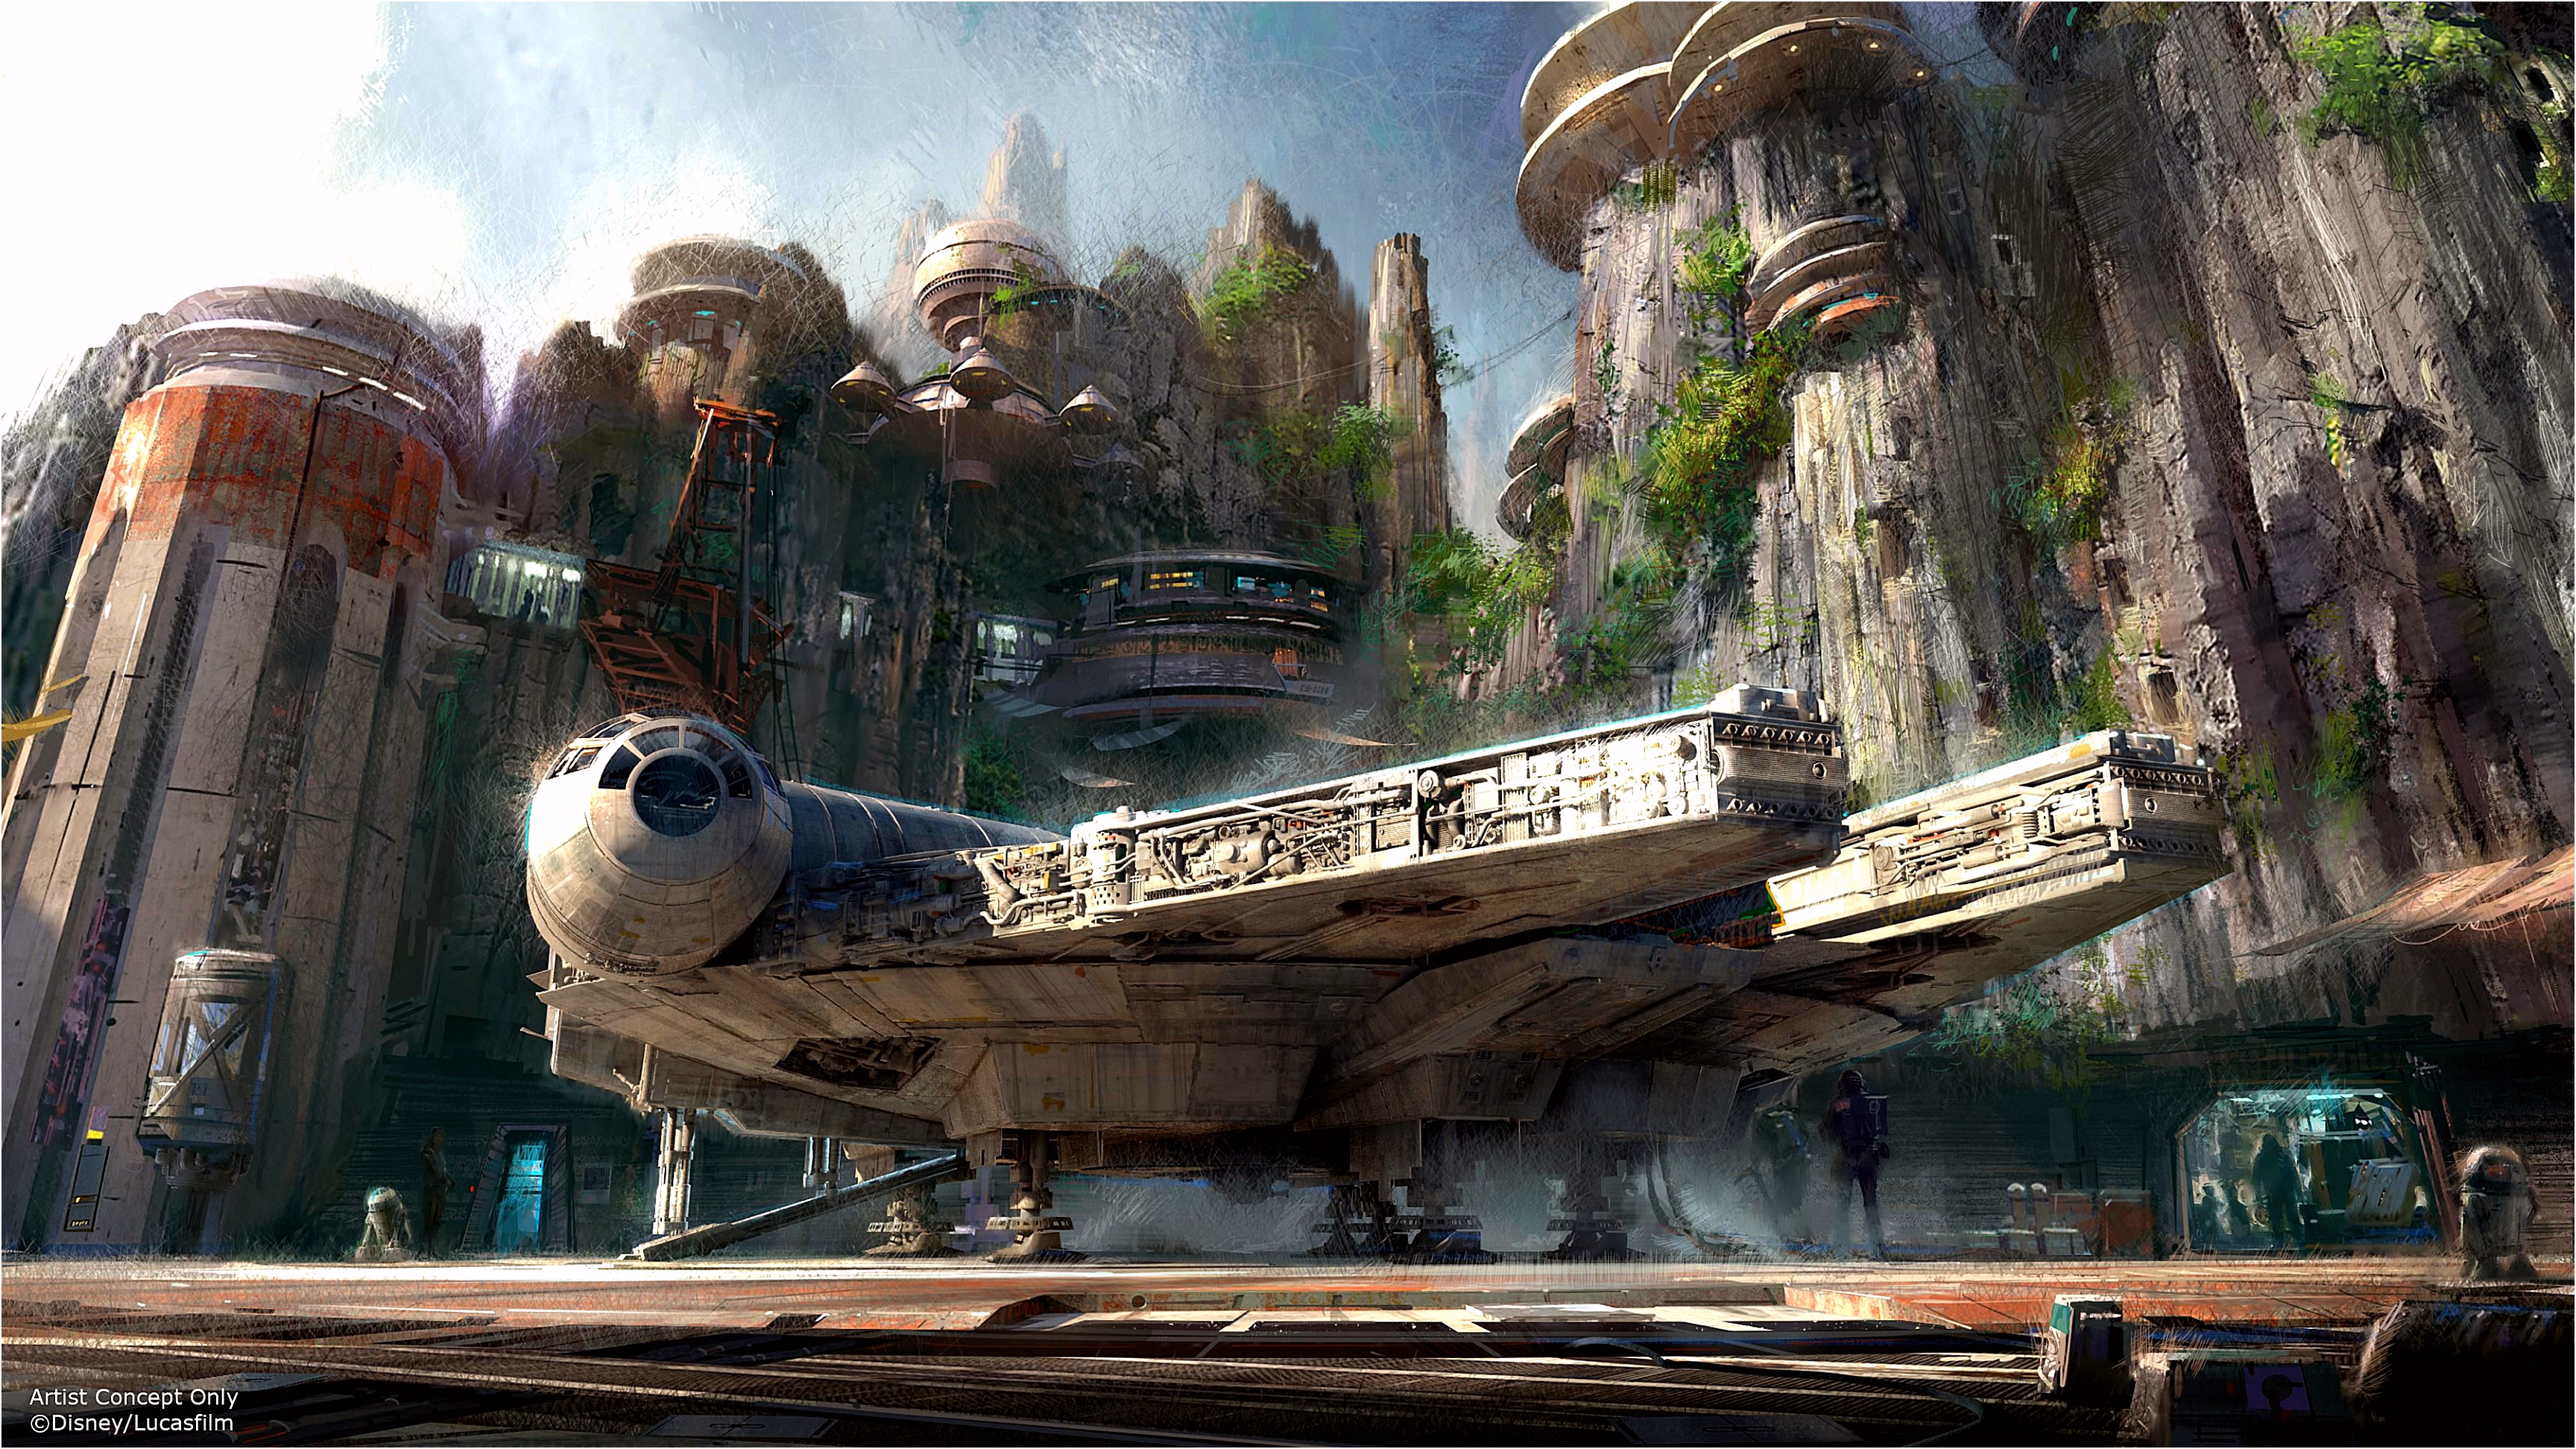 Star Wars Lands Blast f at Disneyland and Disney World